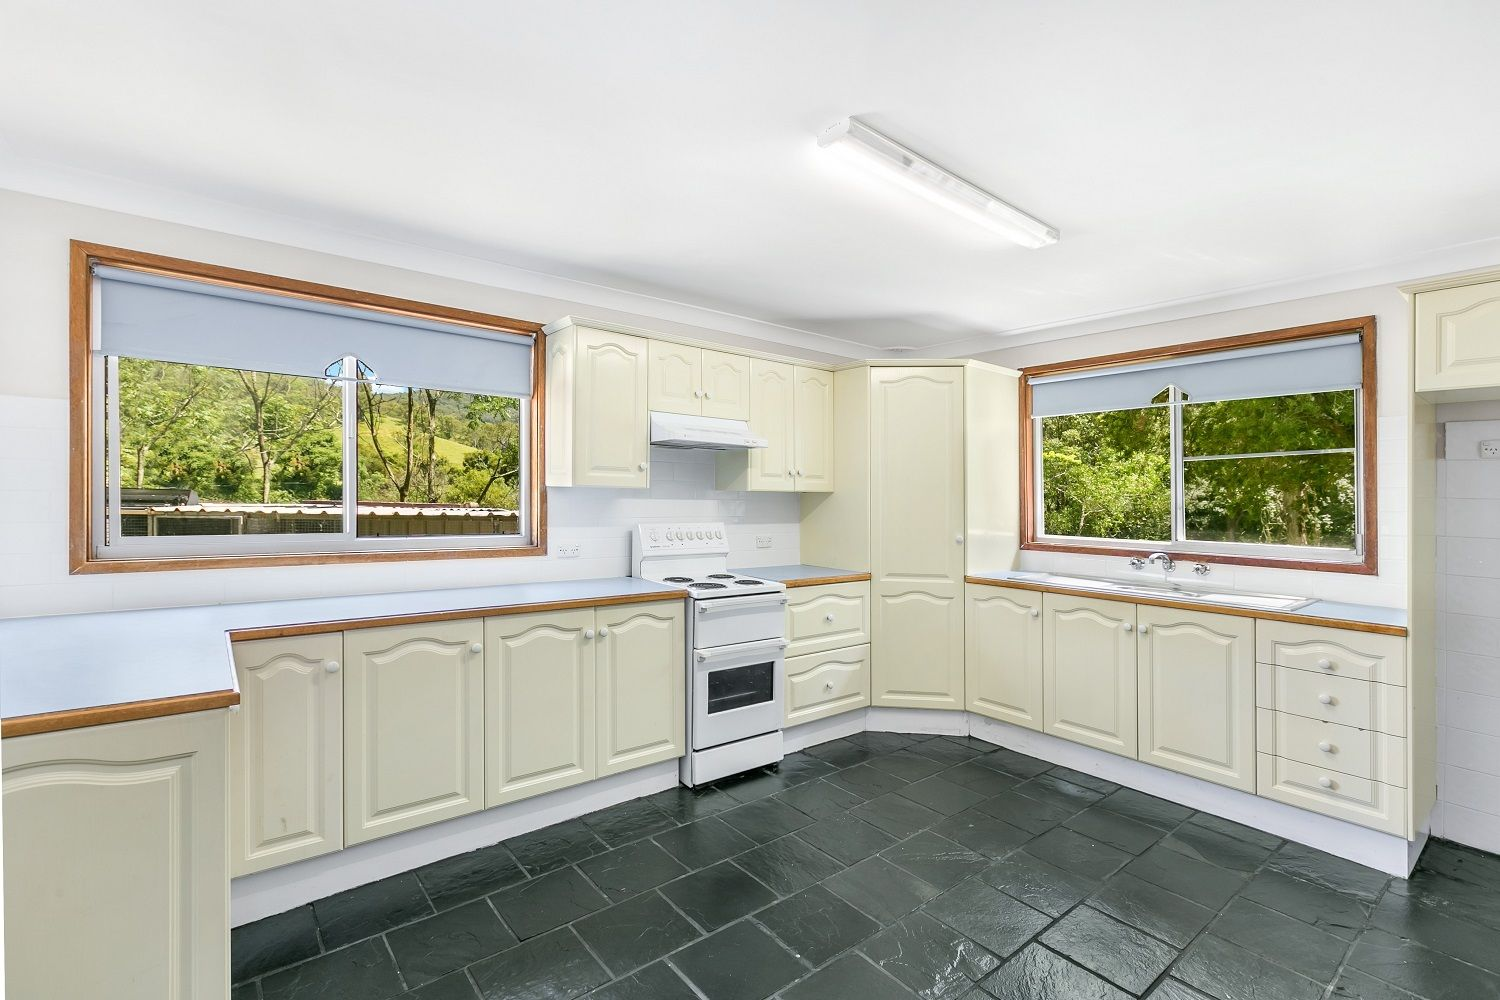 344 Hilldale Road, Hilldale NSW 2420, Image 2